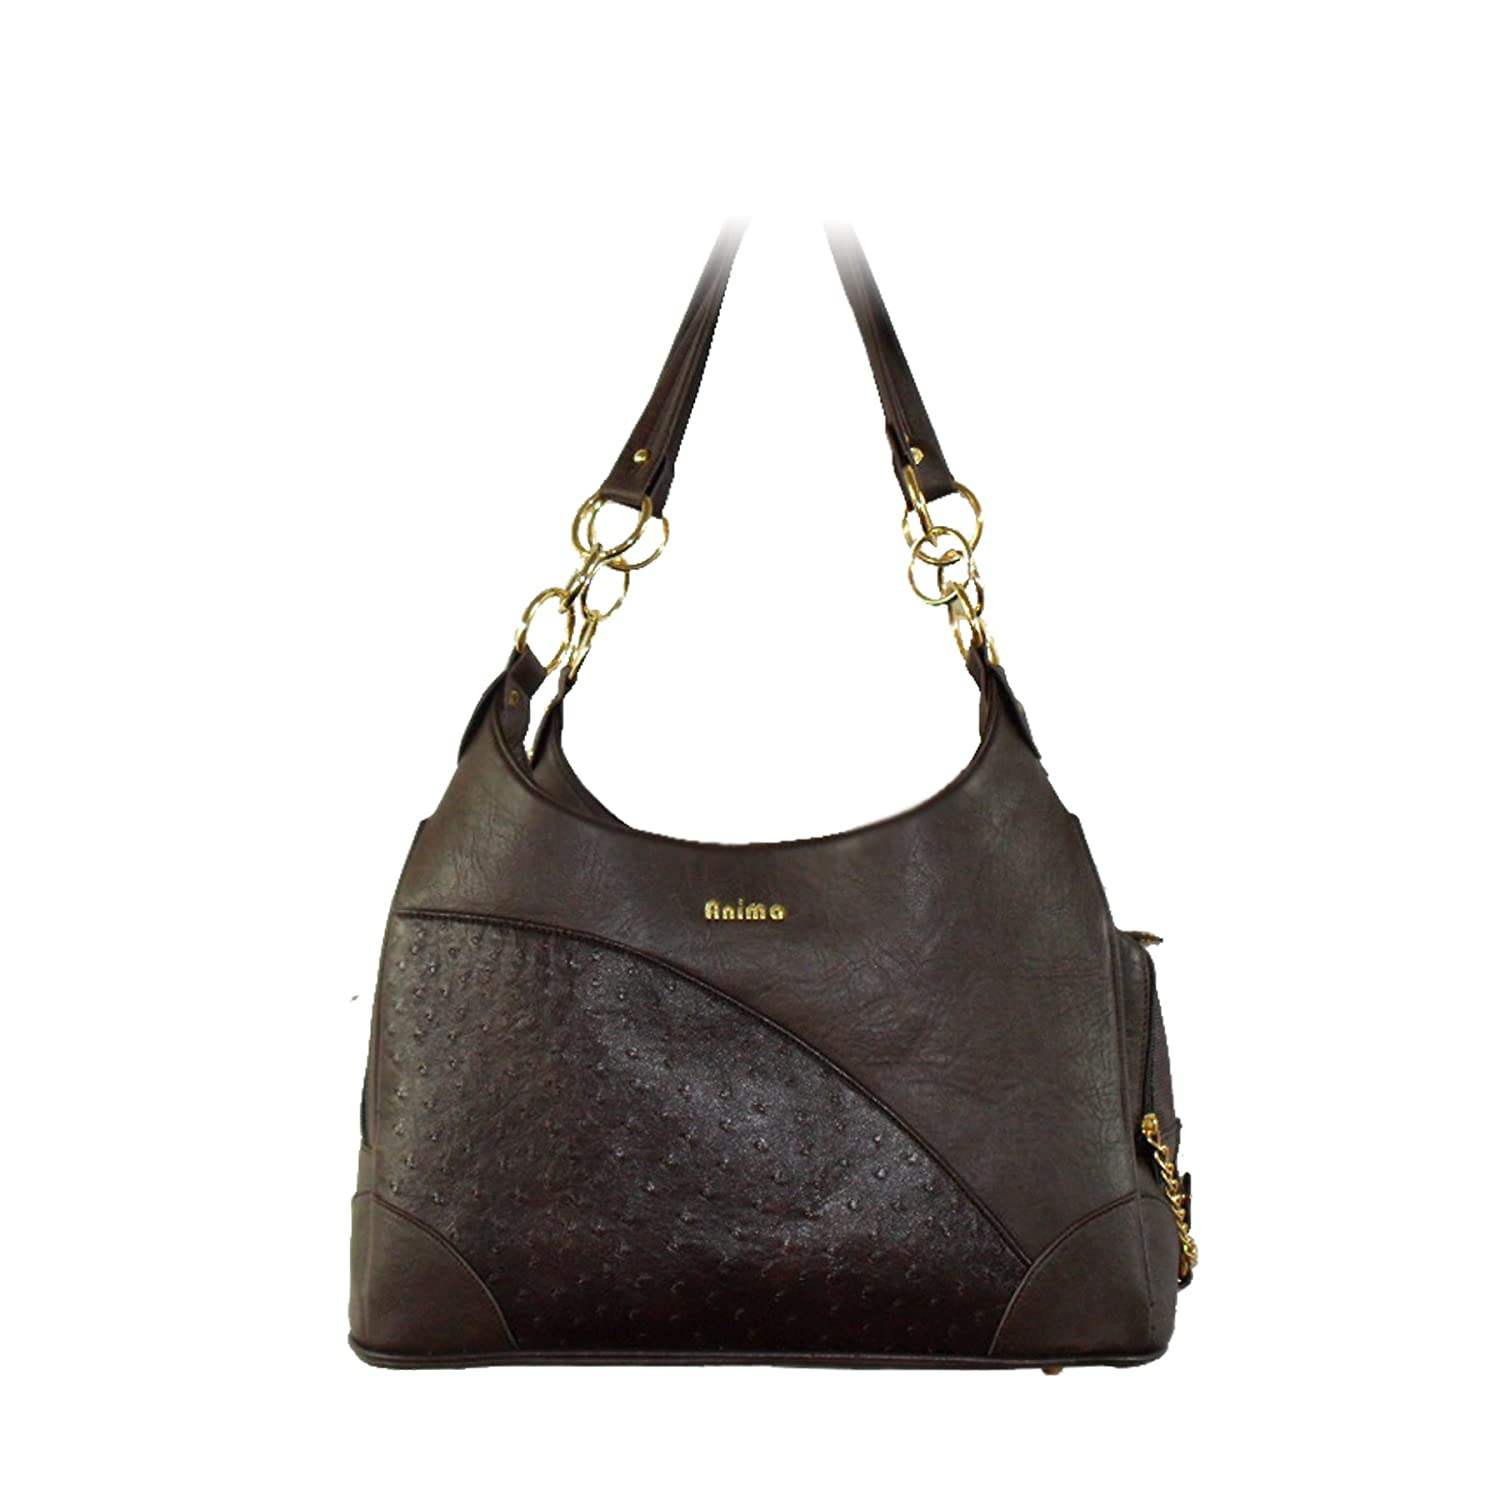 leather designer purse for carrying small dogs